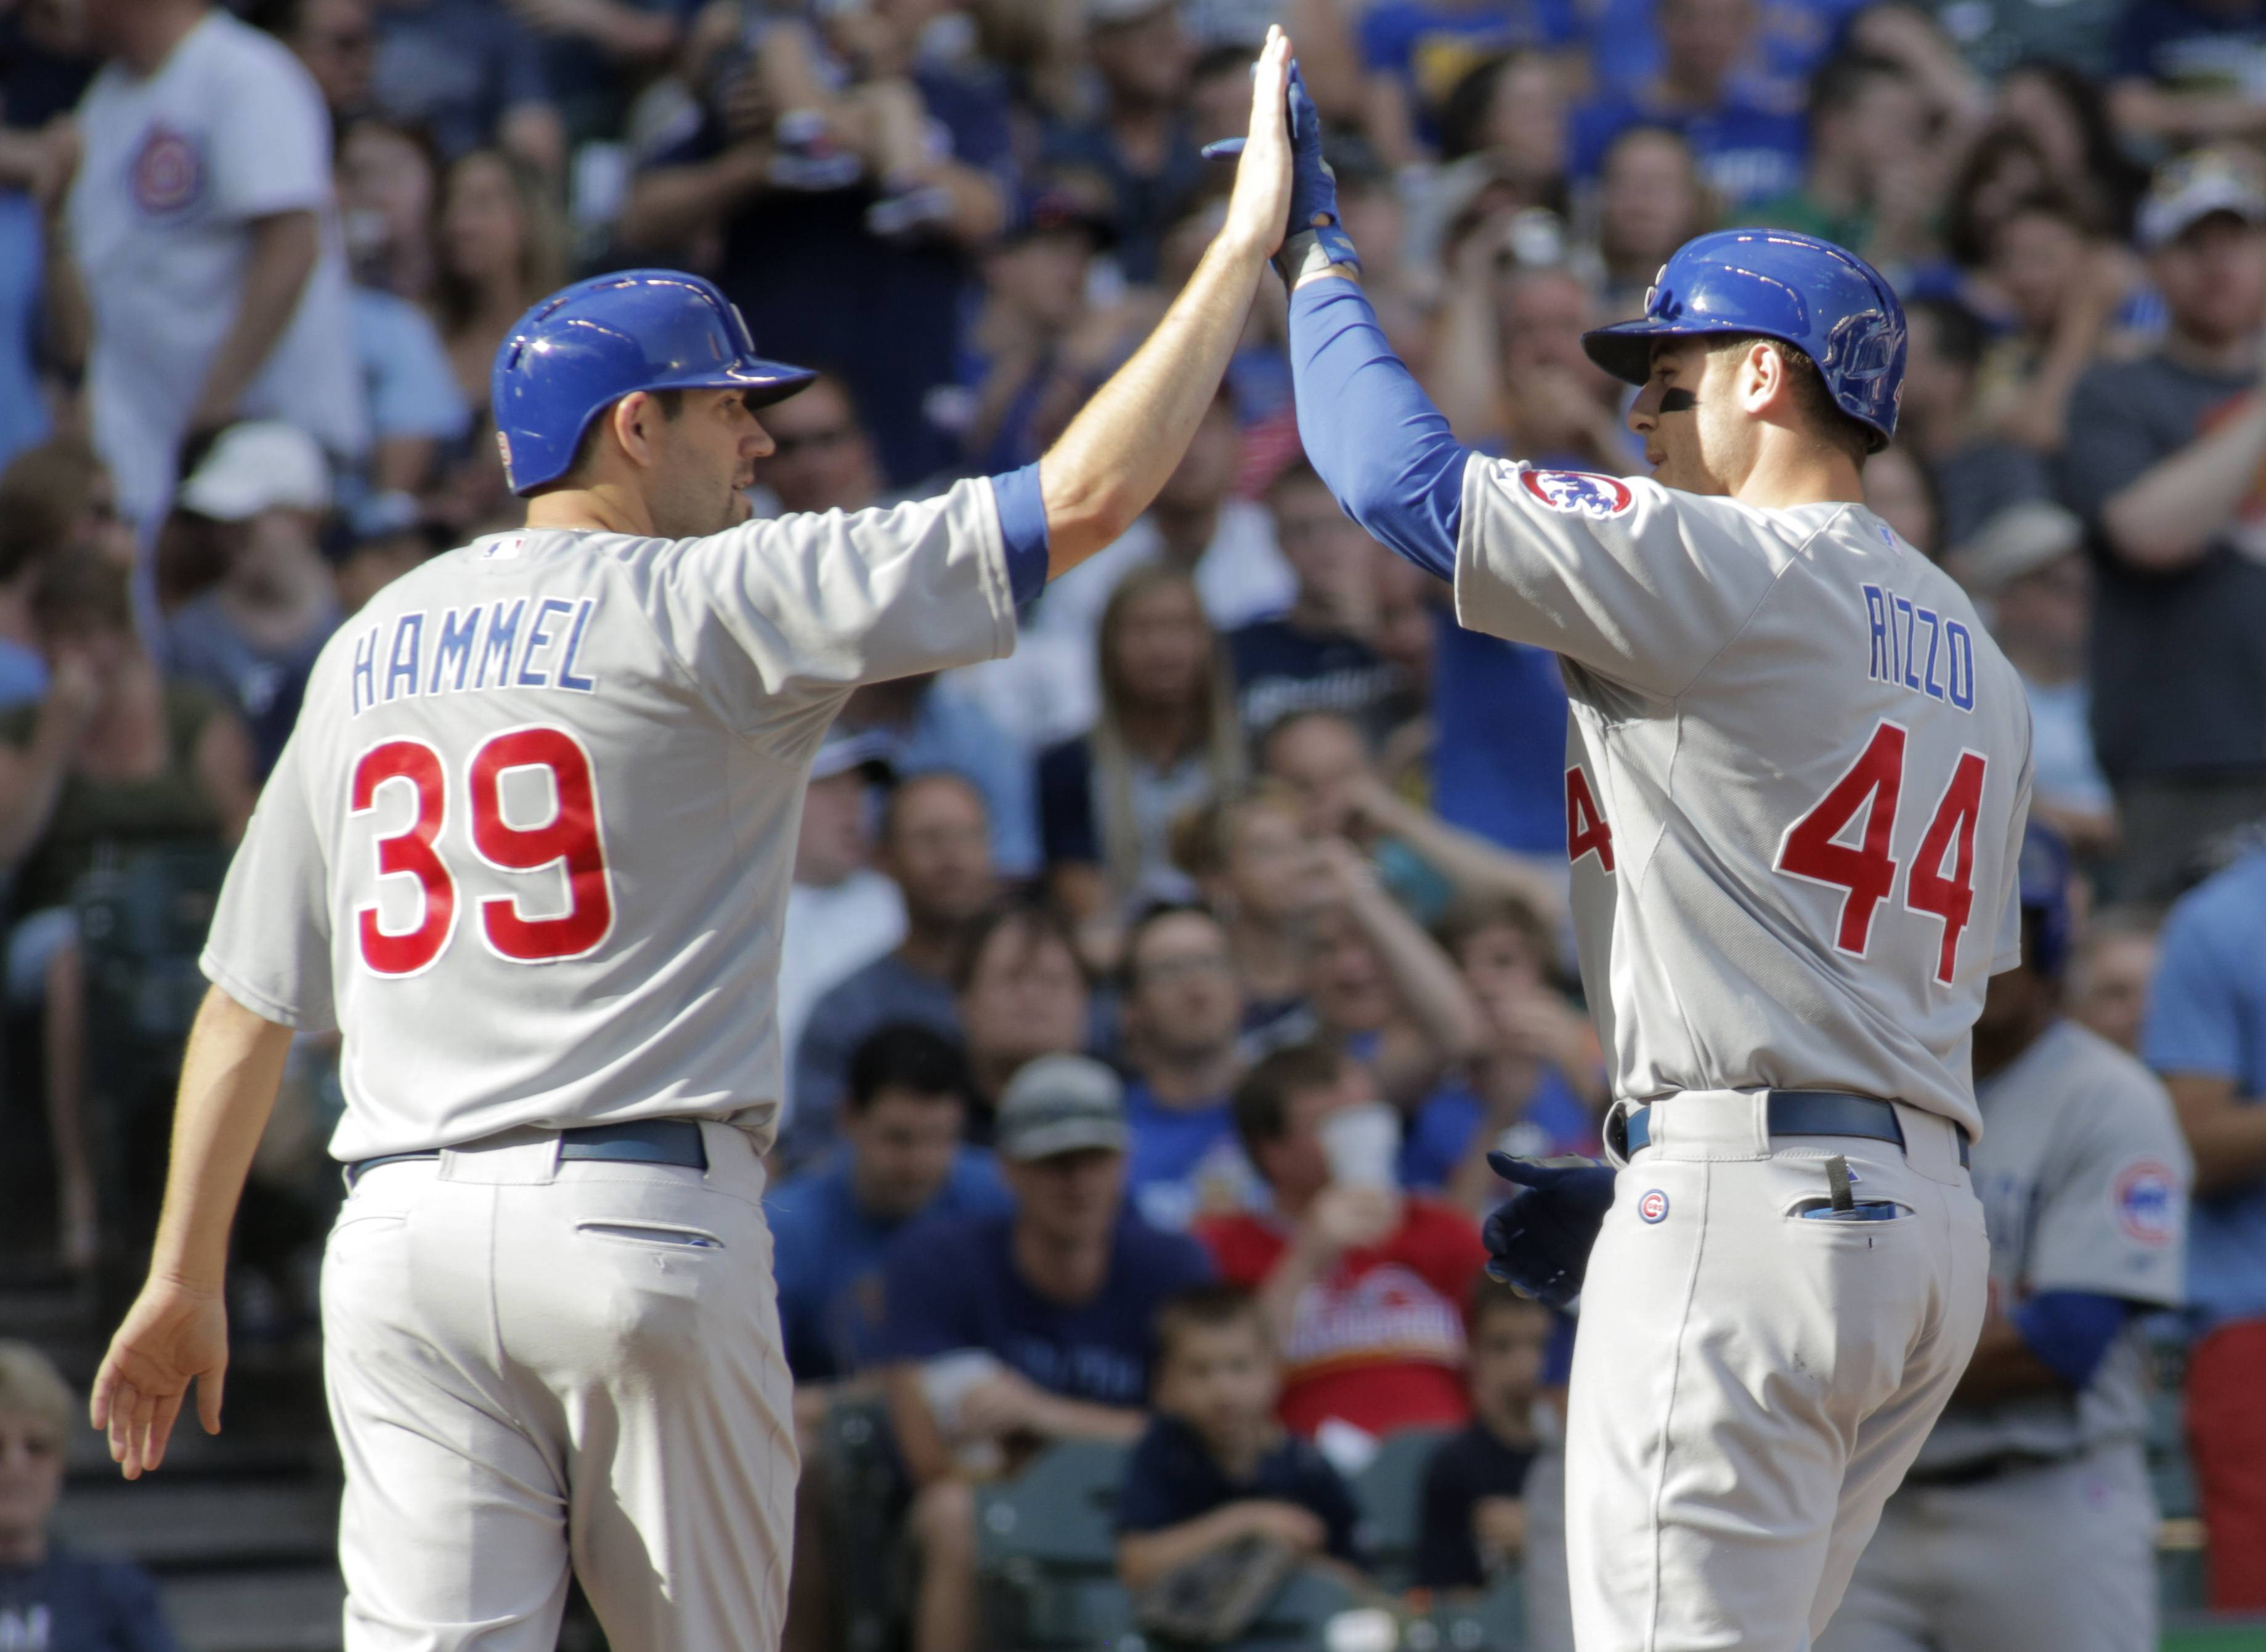 The Cubs' Jason Hammel, left, congratulates Anthony Rizzo after his a two-run home run against the Brewers in the sixth inning Saturday in Milwaukee.